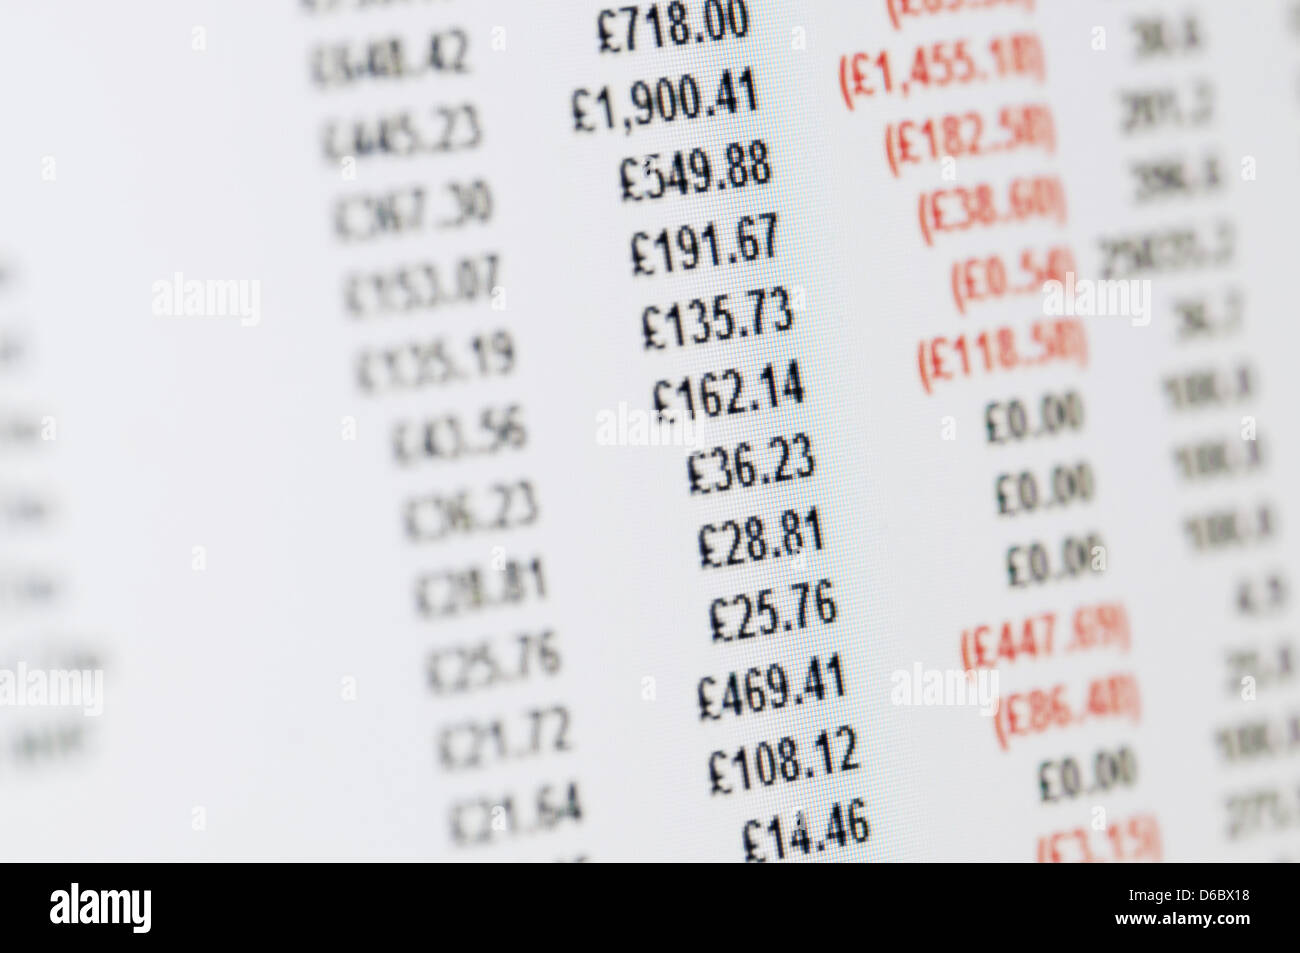 business concept close up of balance sheet in pounds on a high